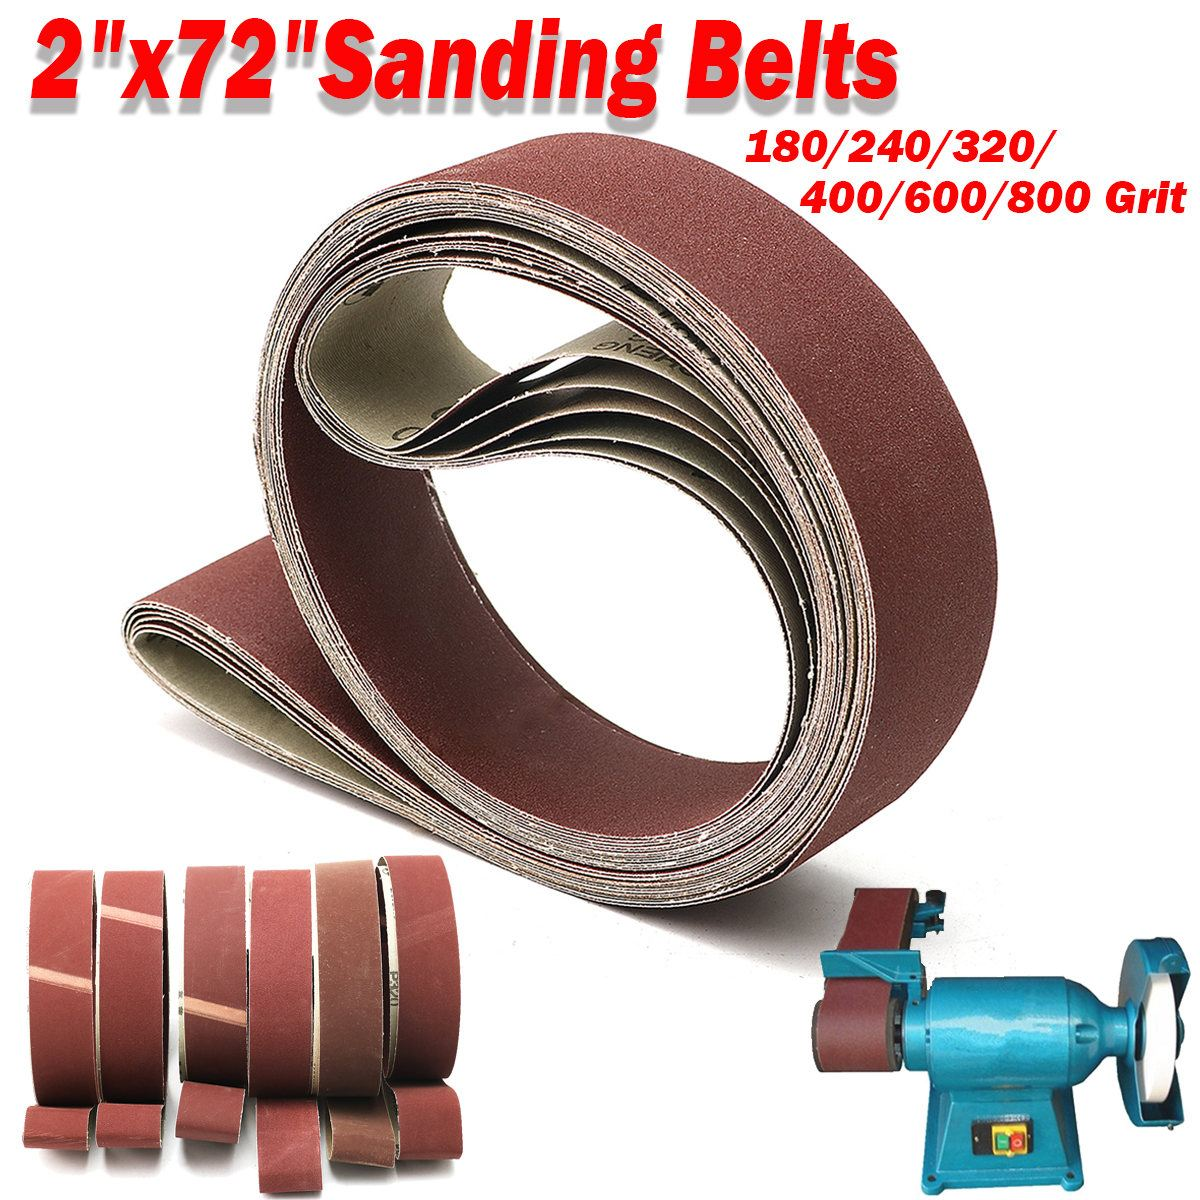 6pcs Sanding Belts 180 240 320 400 600 800 Grit 2